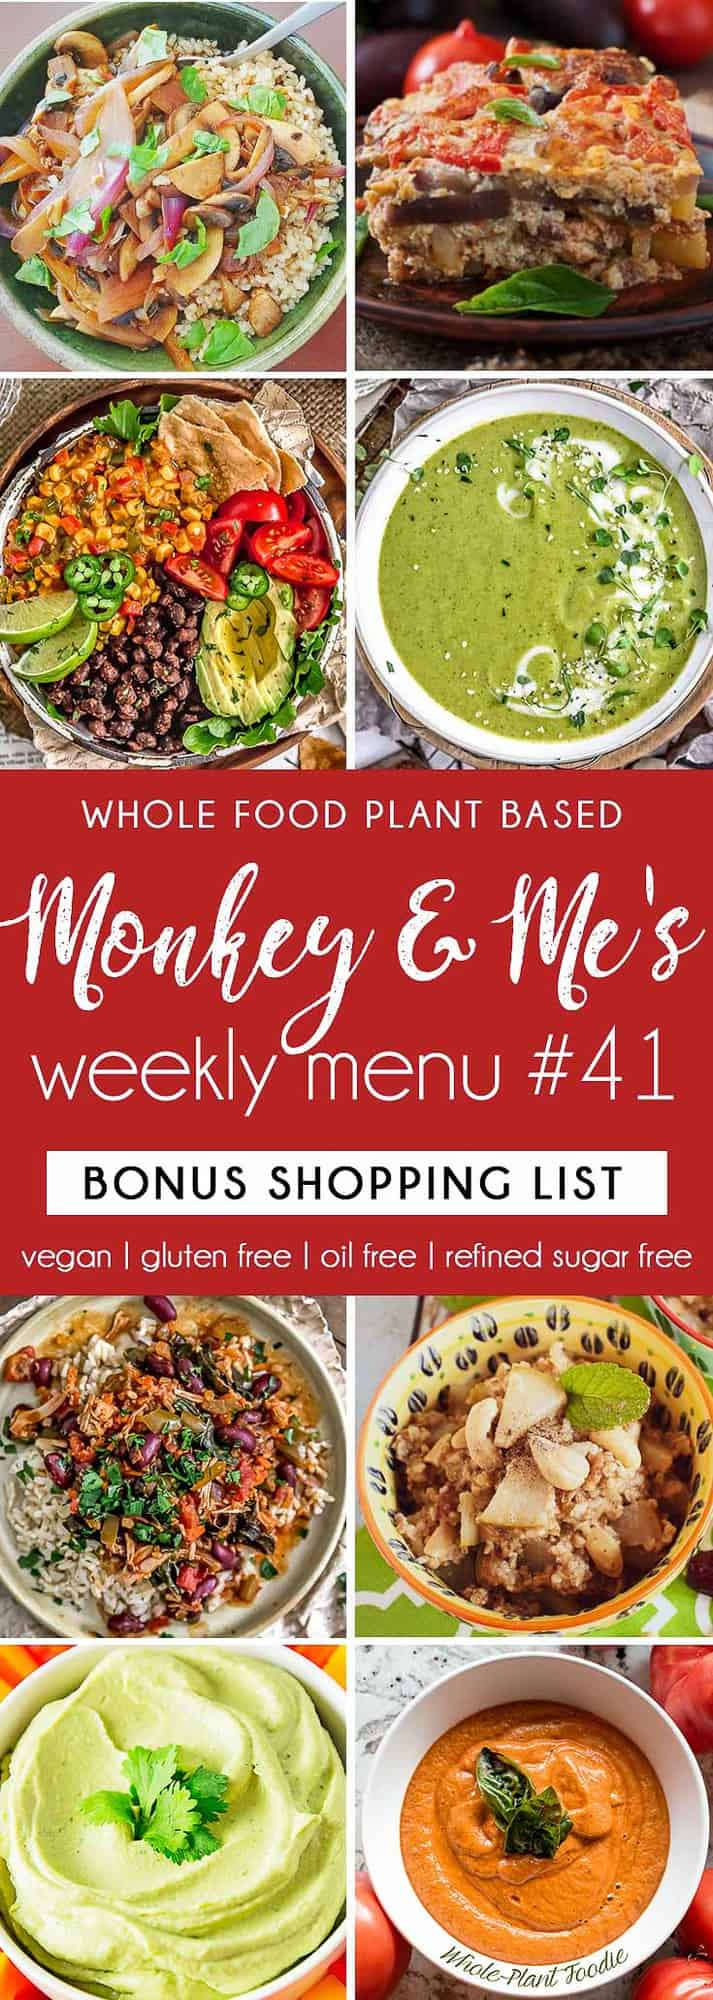 Monkey and Me's Menu 41 featuring 8 recipes